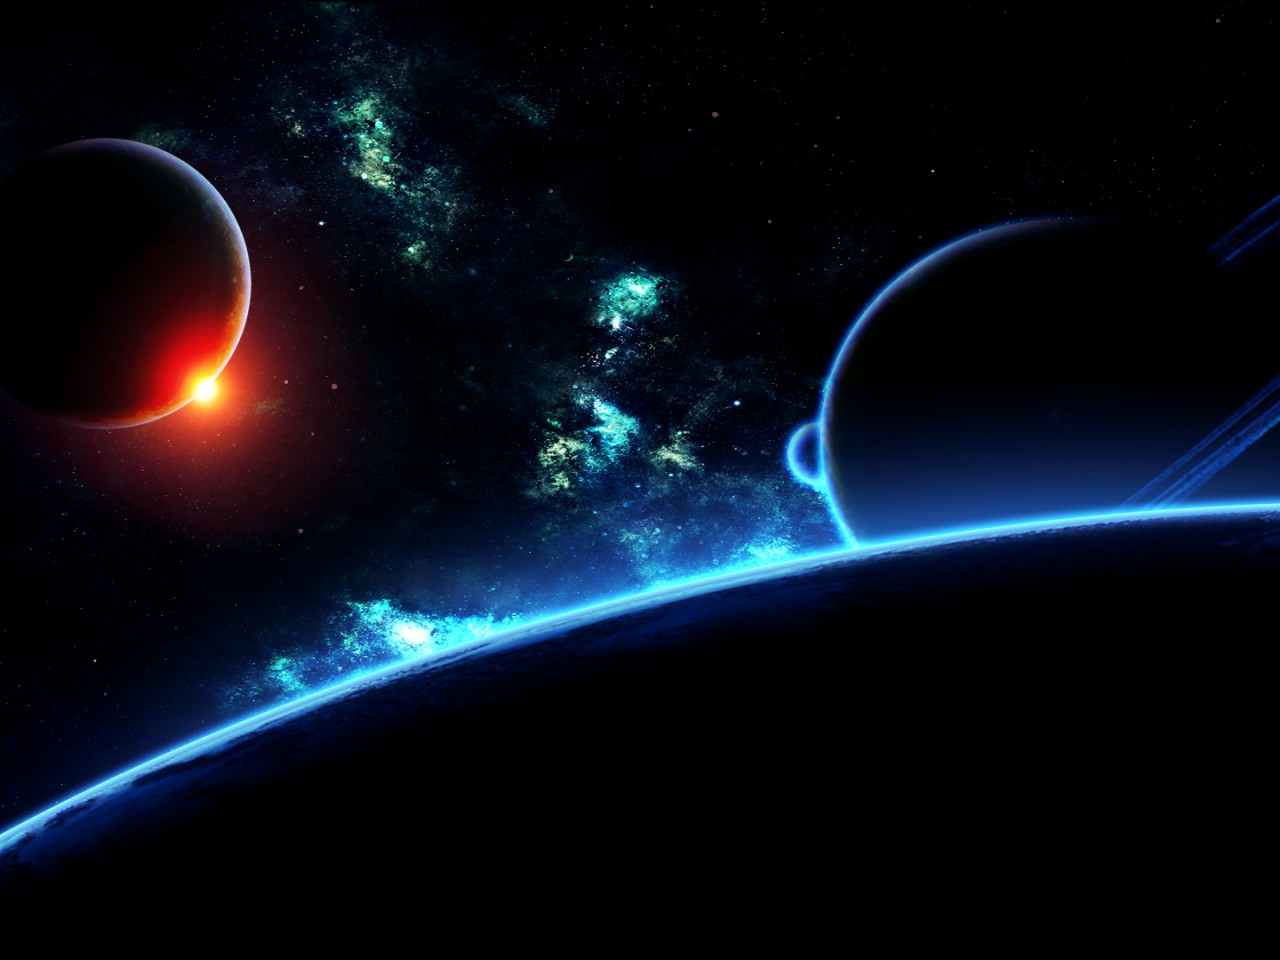 Space Wallpapers High Resolution: HD Wallpapers